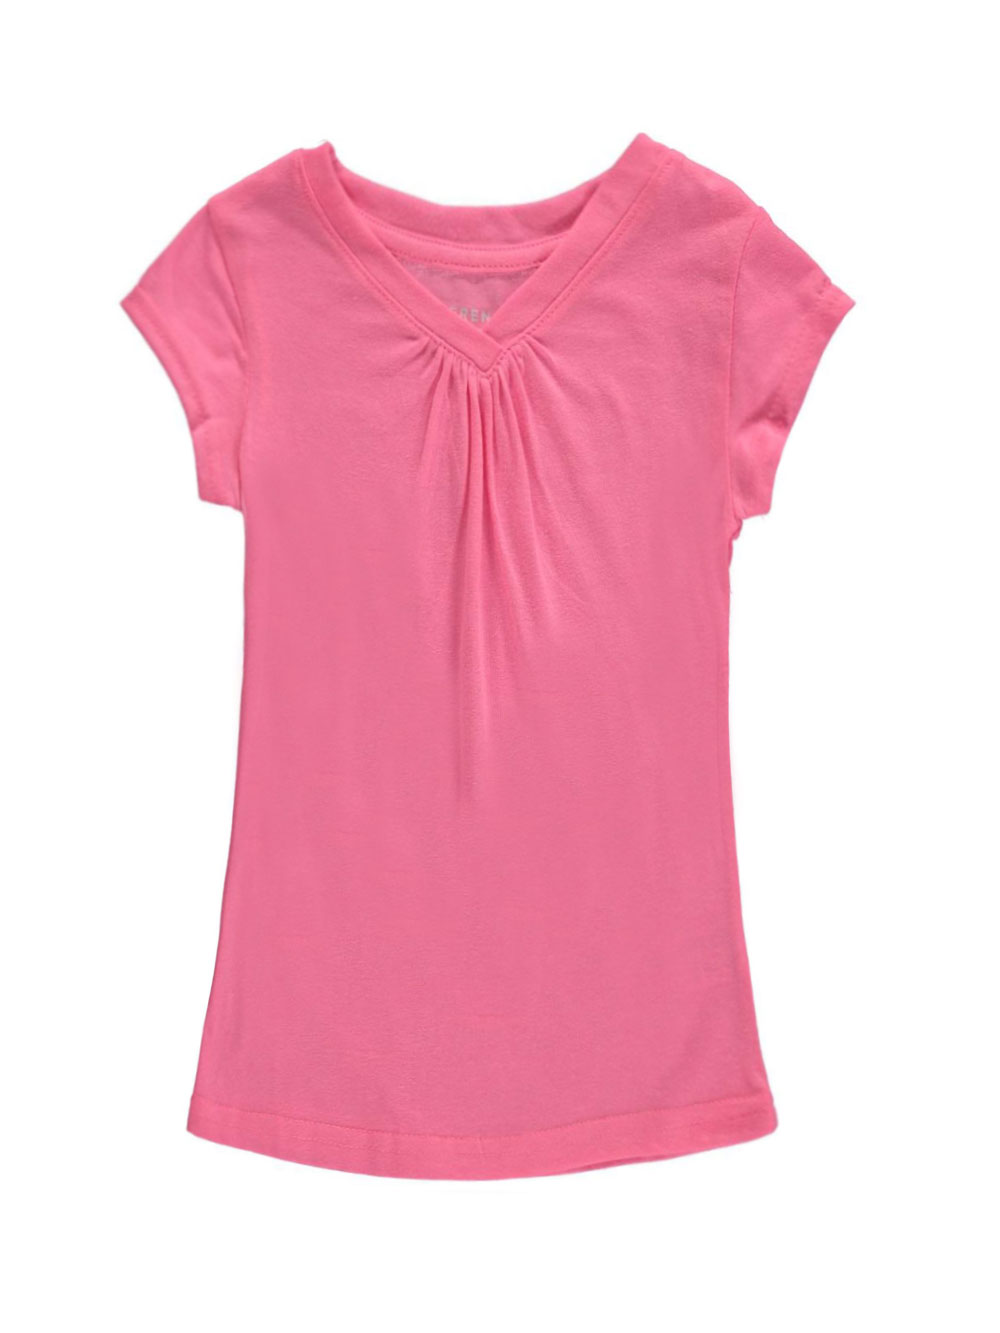 Image of French Toast Little Girls Toddler Ruched VNeck TShirt Sizes 2T  4T  pink 3t